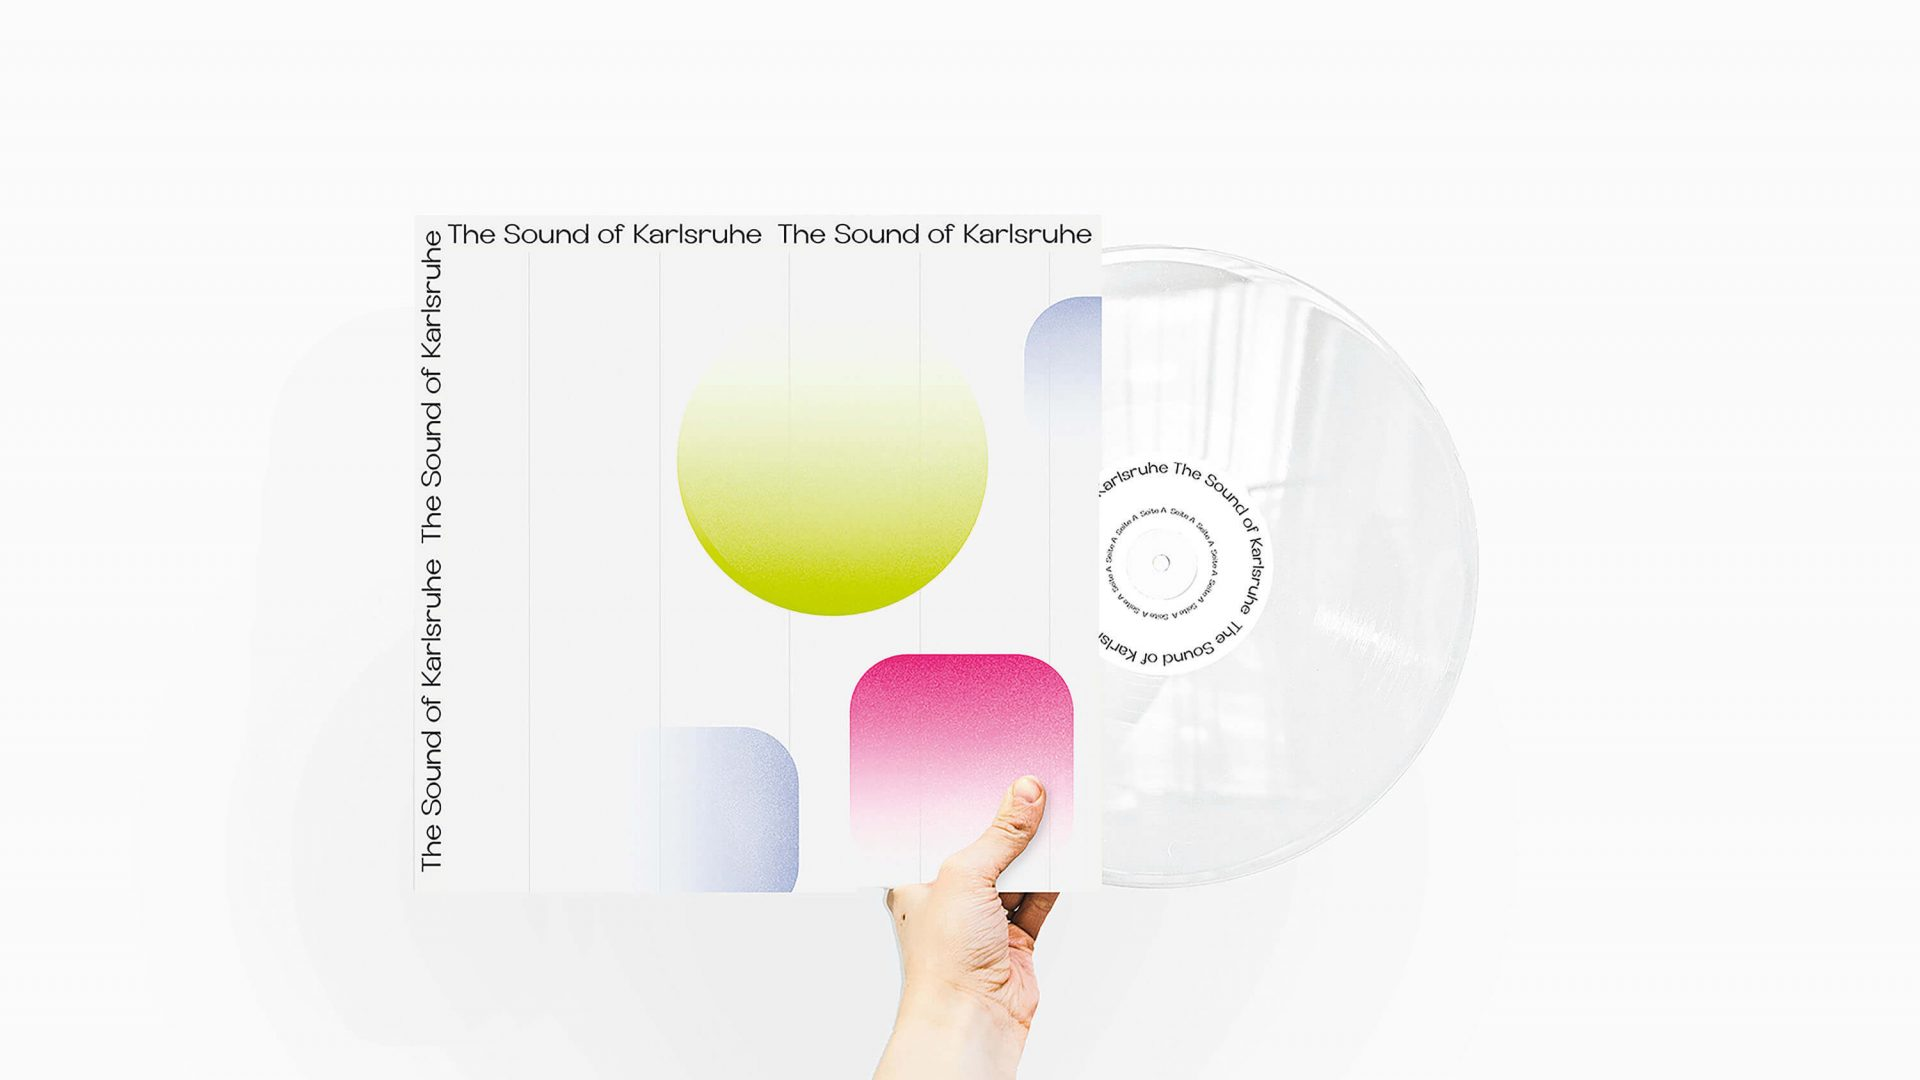 The_Sound_Of_Karlsruhe_3